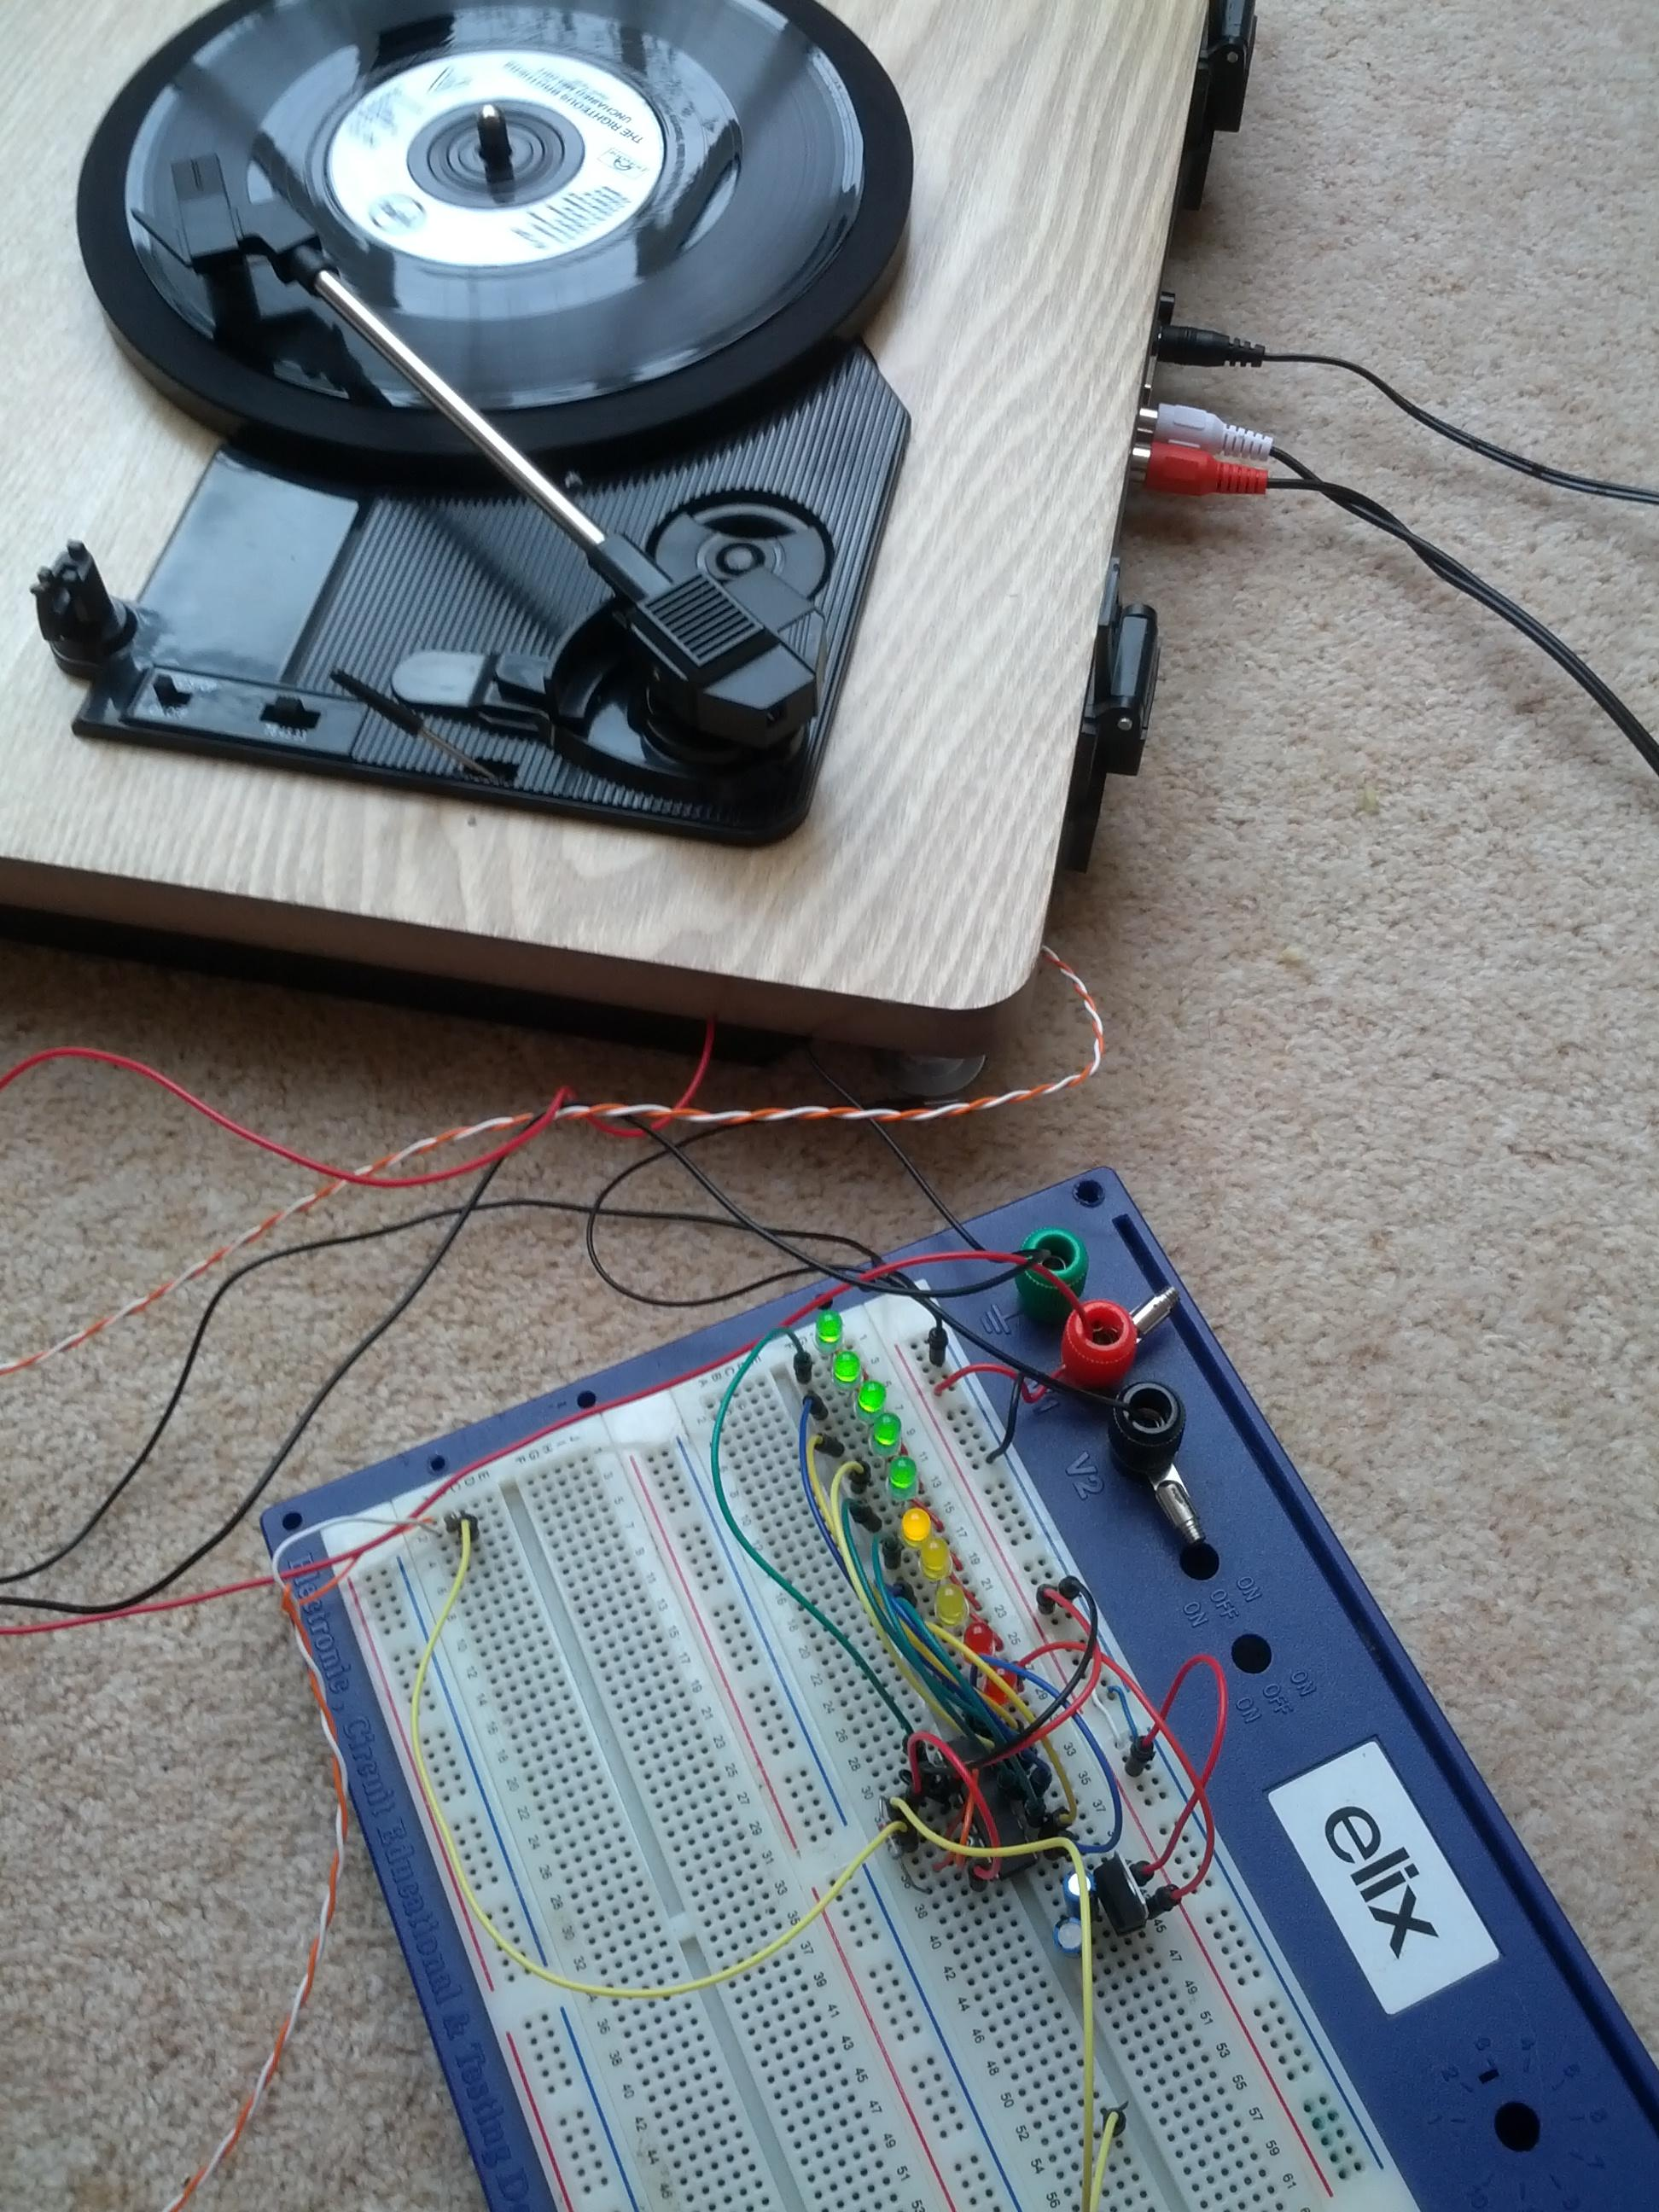 Adding Stereo Vu Meters To A Turntable Michael Duerinckx Led Lm3915 Meter Not Working Properly Electrical Engineering Playing Record With Wires Coming Out Of It Connected Breadboard